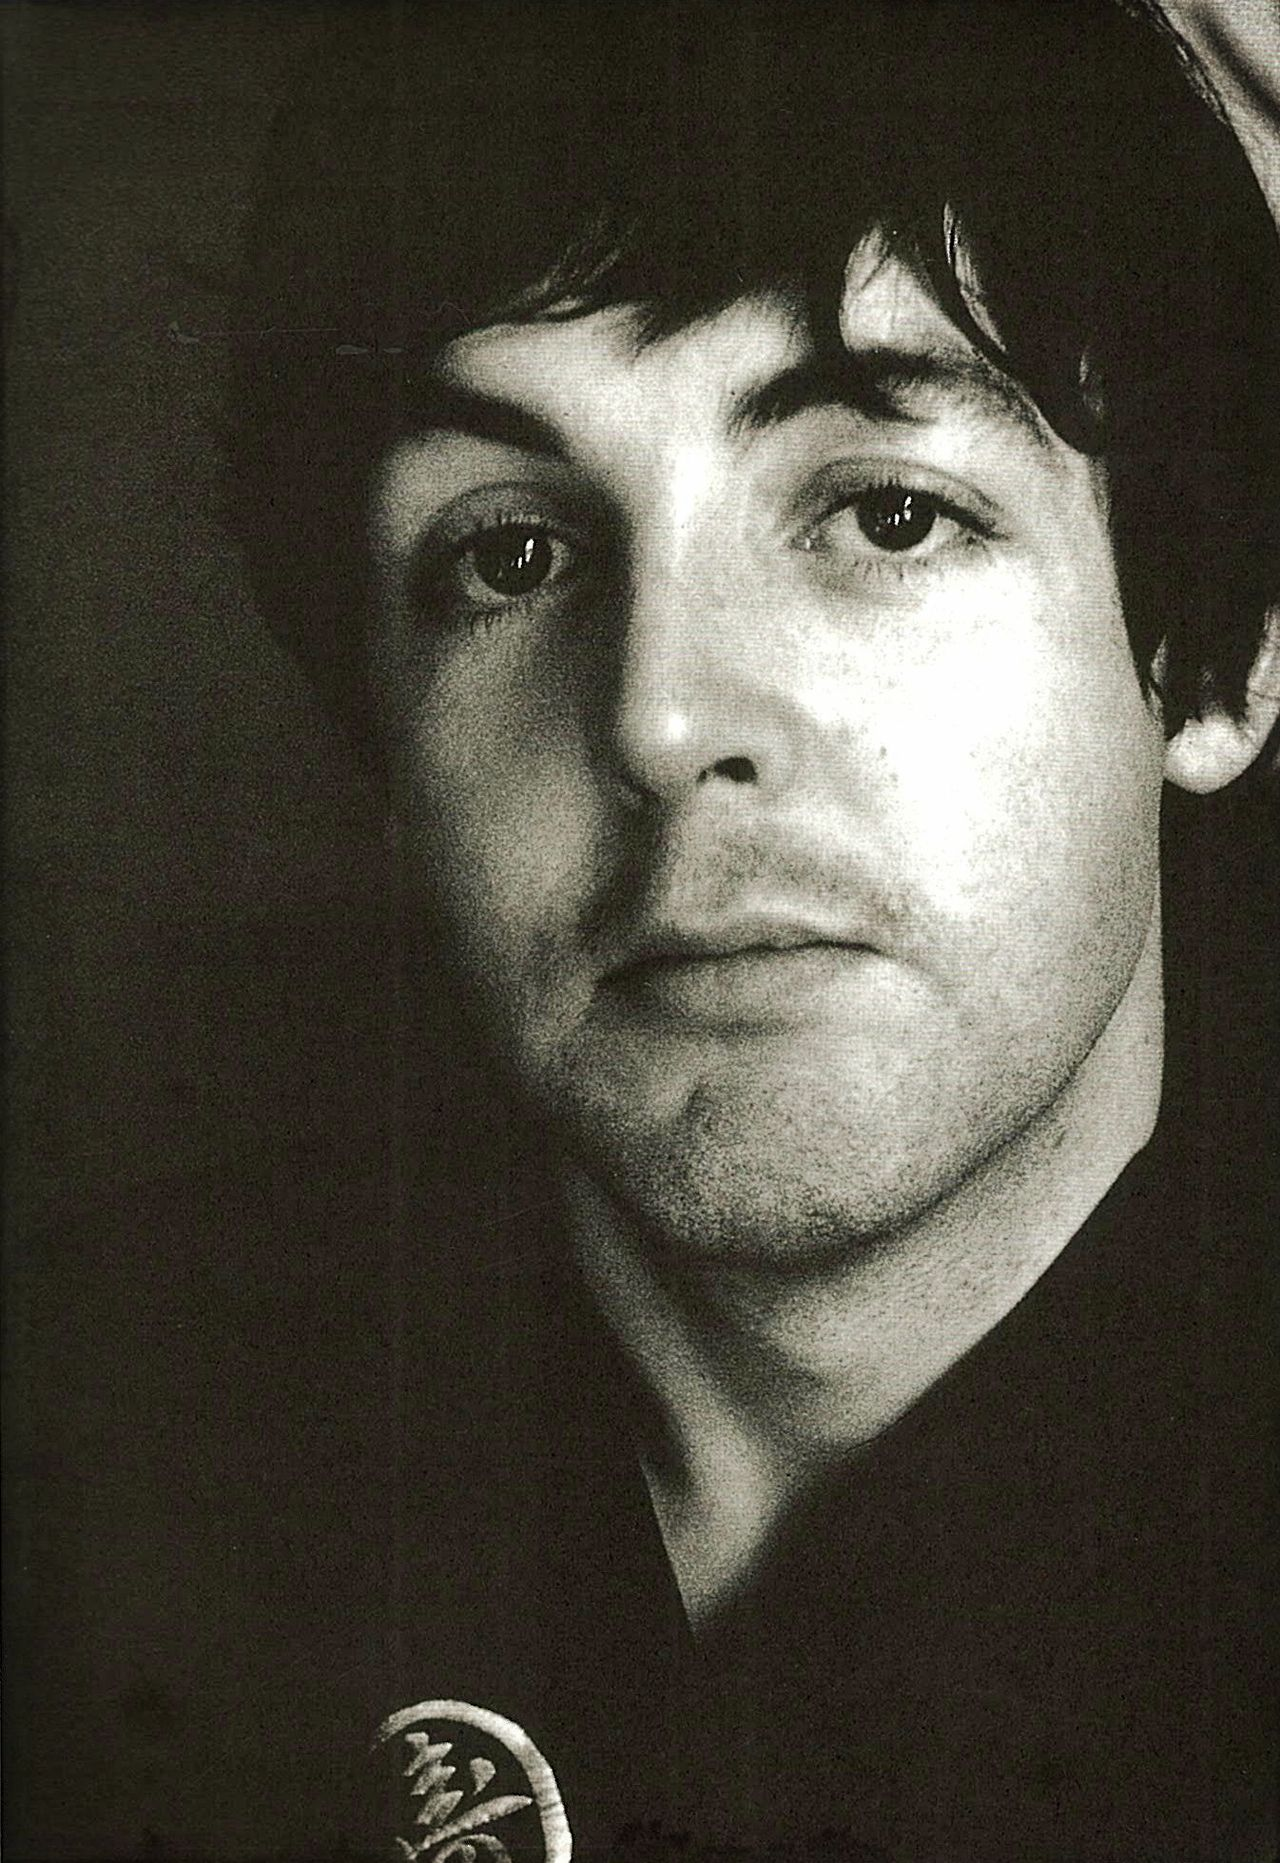 paul mccartney - photo #27